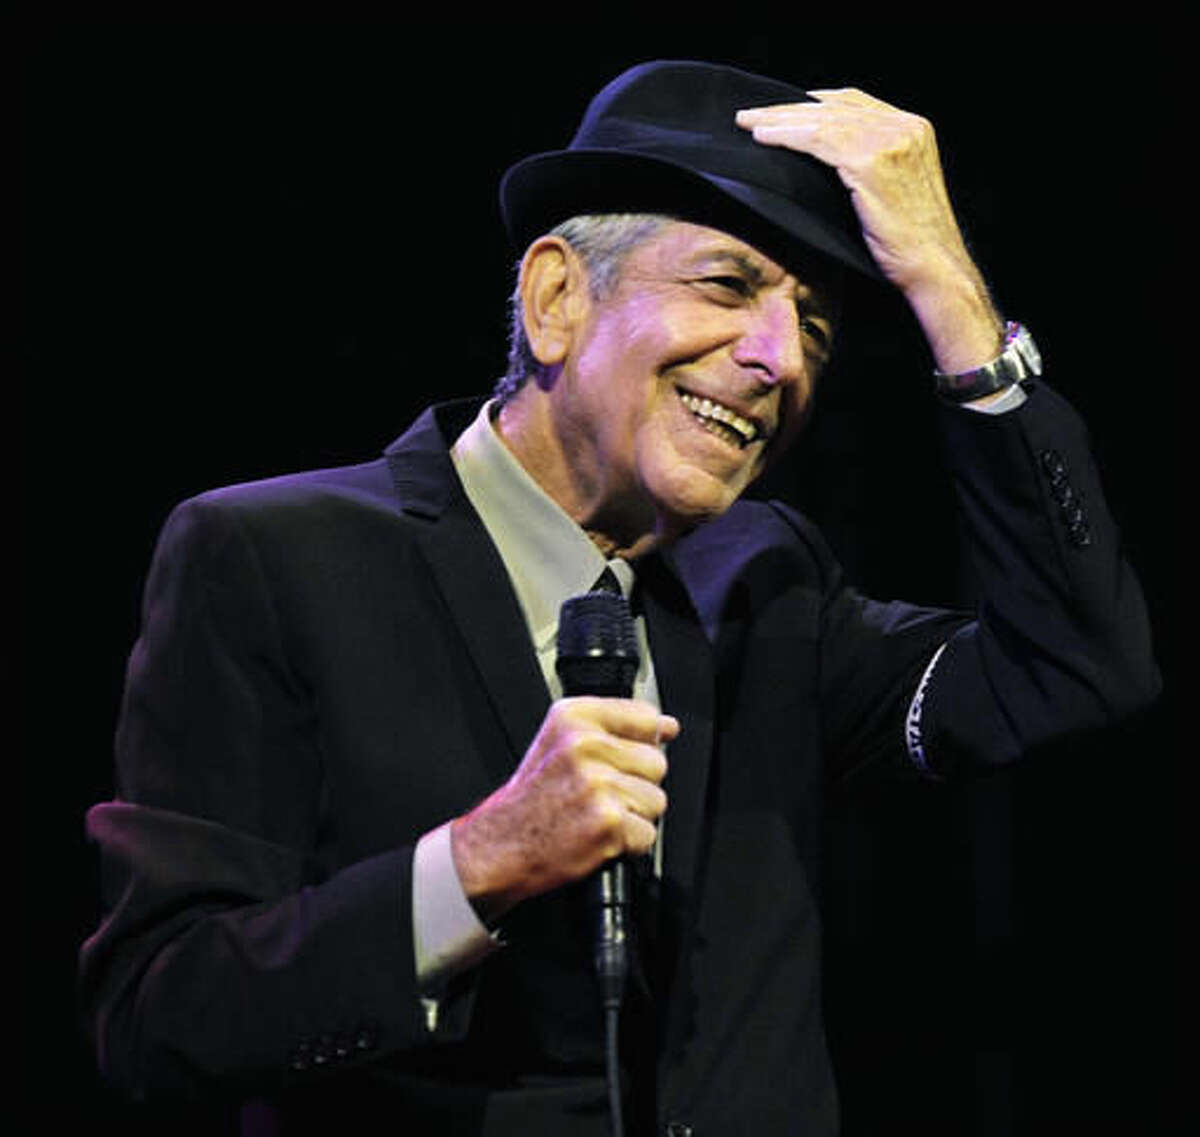 """CORRECTS DATE OF STATEMENT - FILE - In this April 17, 2009, file photo, Leonard Cohen performs during the first day of the Coachella Valley Music & Arts Festival in Indio, Calif. Cohen, the gravelly-voiced Canadian singer-songwriter of hits like """"Hallelujah,"""" """"Suzanne"""" and """"Bird on a Wire,"""" has died, his management said in a statement Thursday, Nov. 10, 2016. He was 82. (AP Photo/Chris Pizzello, File)"""